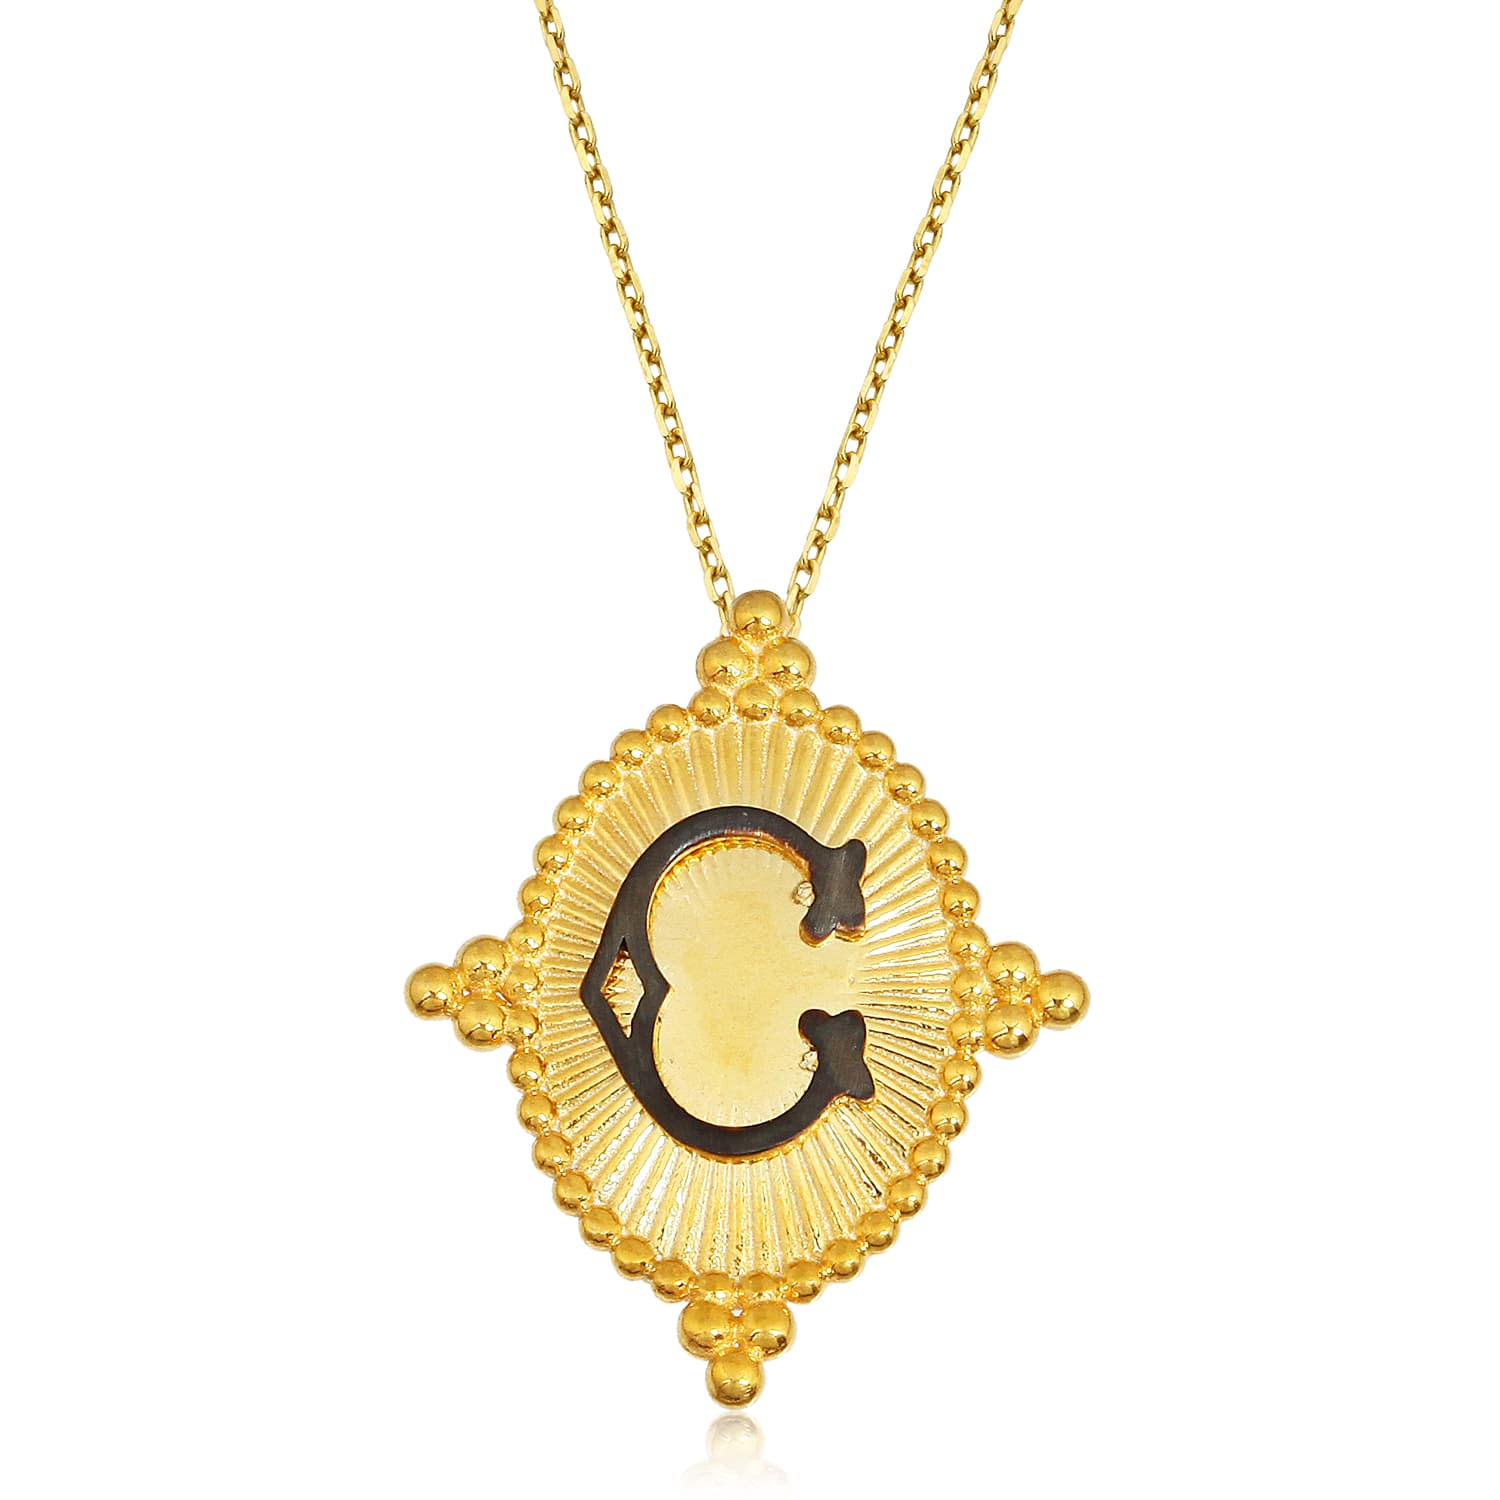 LETTER C VINTAGE NECKLACE